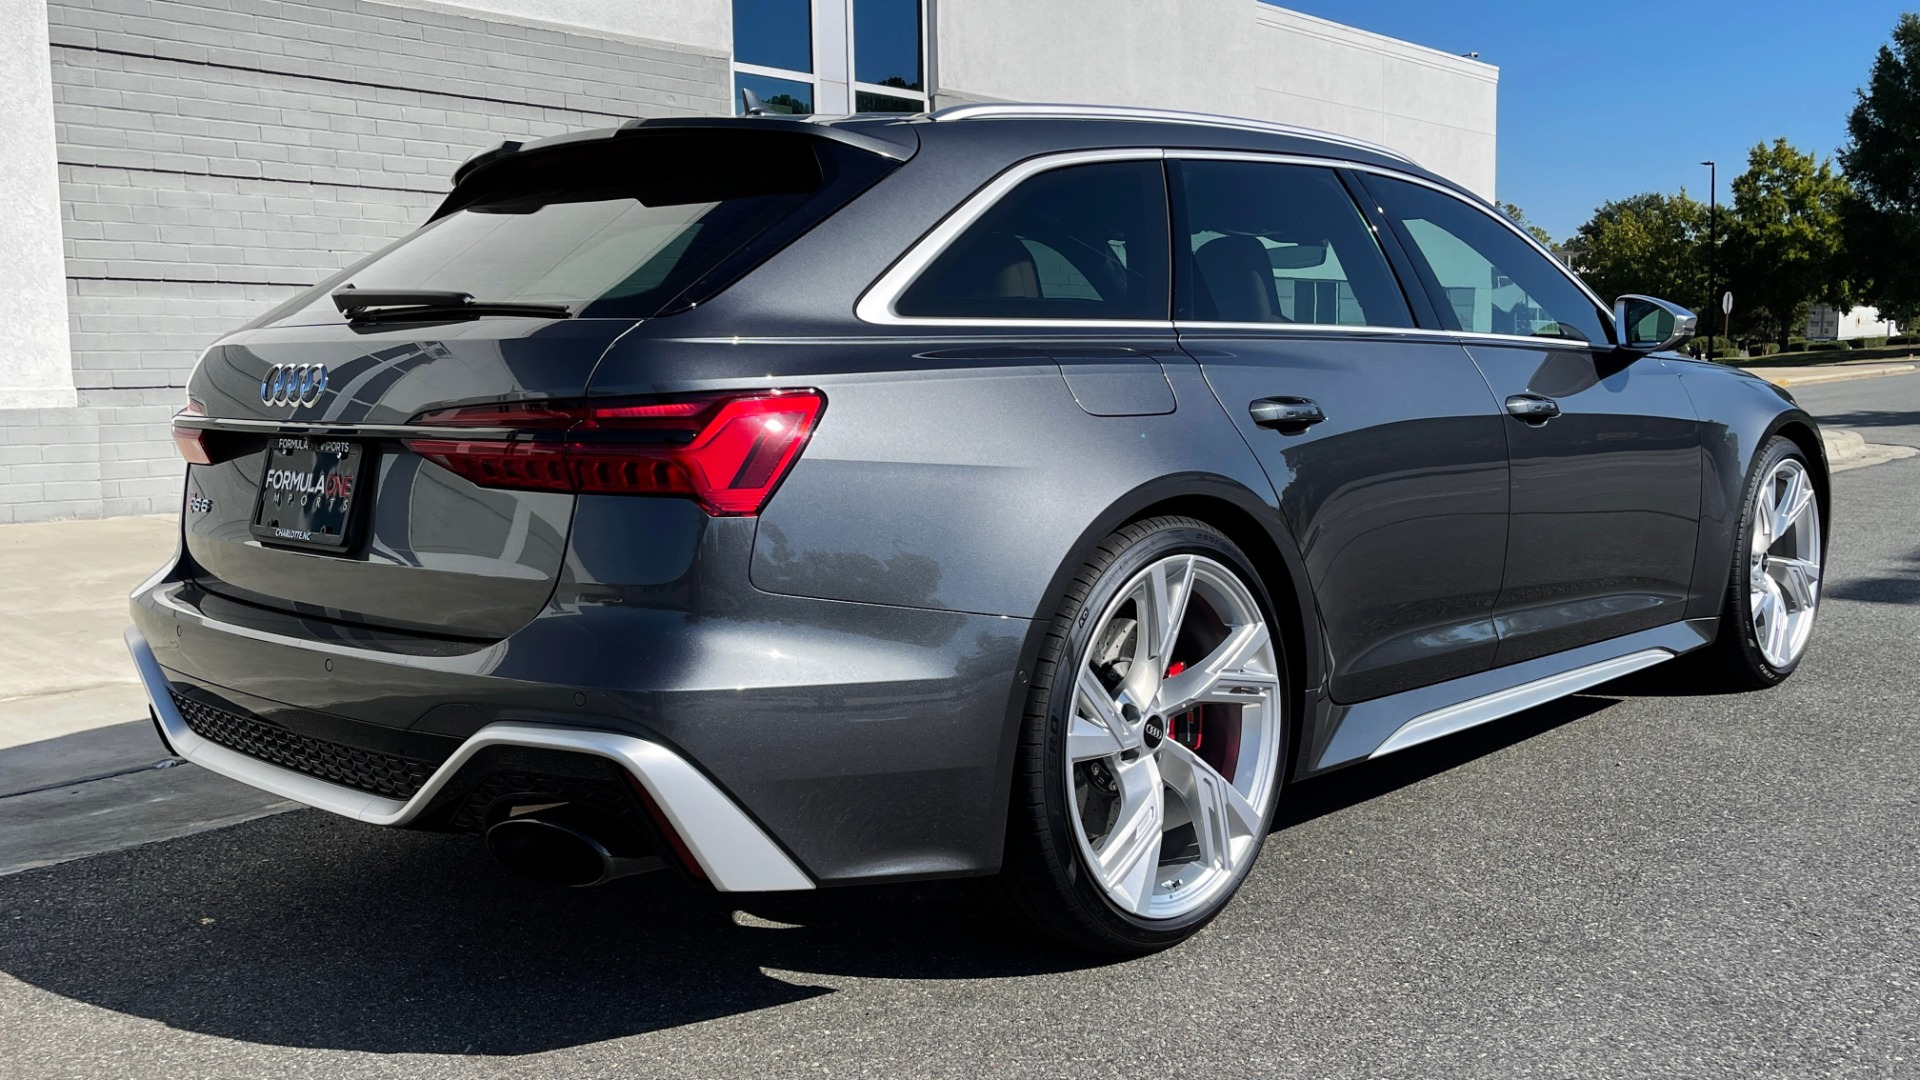 Used 2021 Audi RS 6 AVANT WAGON / EXEC PKG / CARBON OPTIC / B&O SND / DRVR ASST / SPRT EXH for sale Sold at Formula Imports in Charlotte NC 28227 2